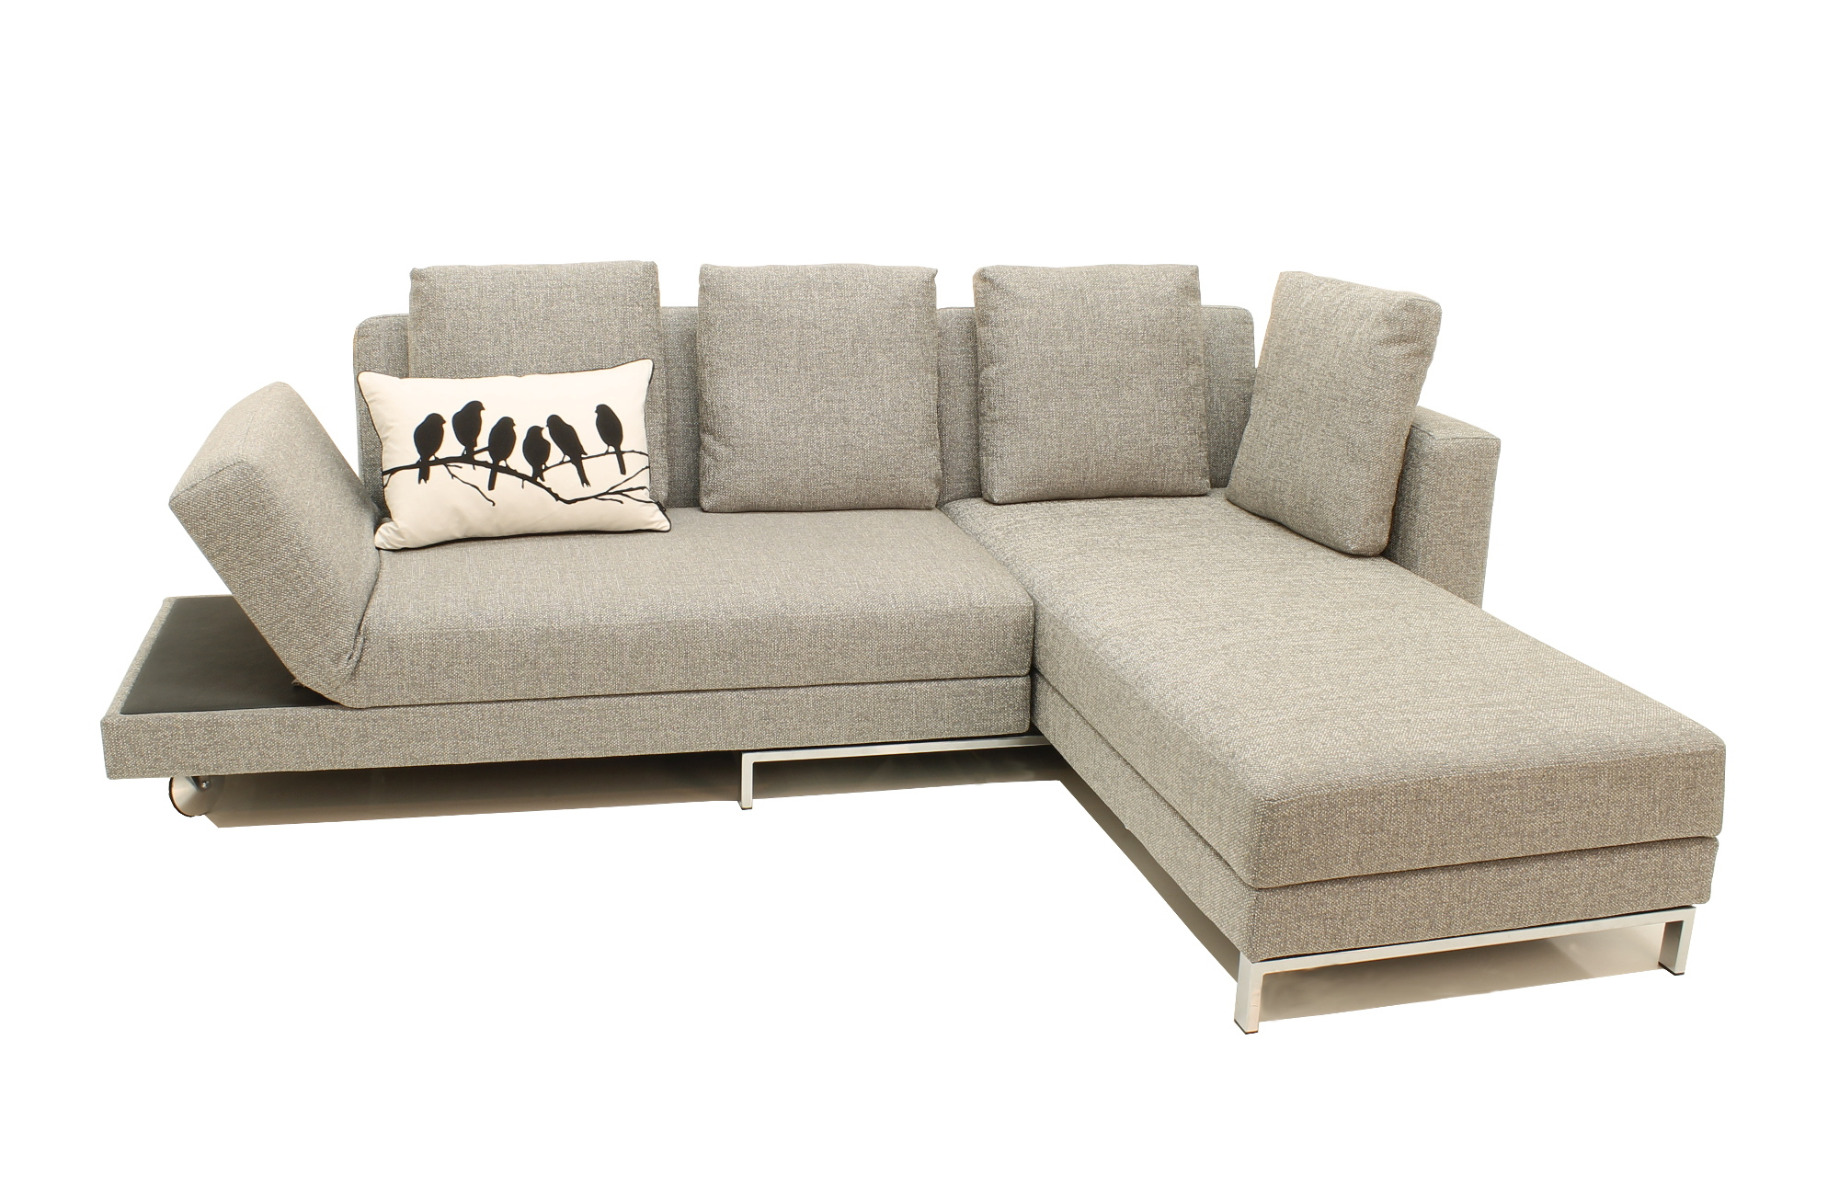 Bettsofa Holzgestell Four Two 2